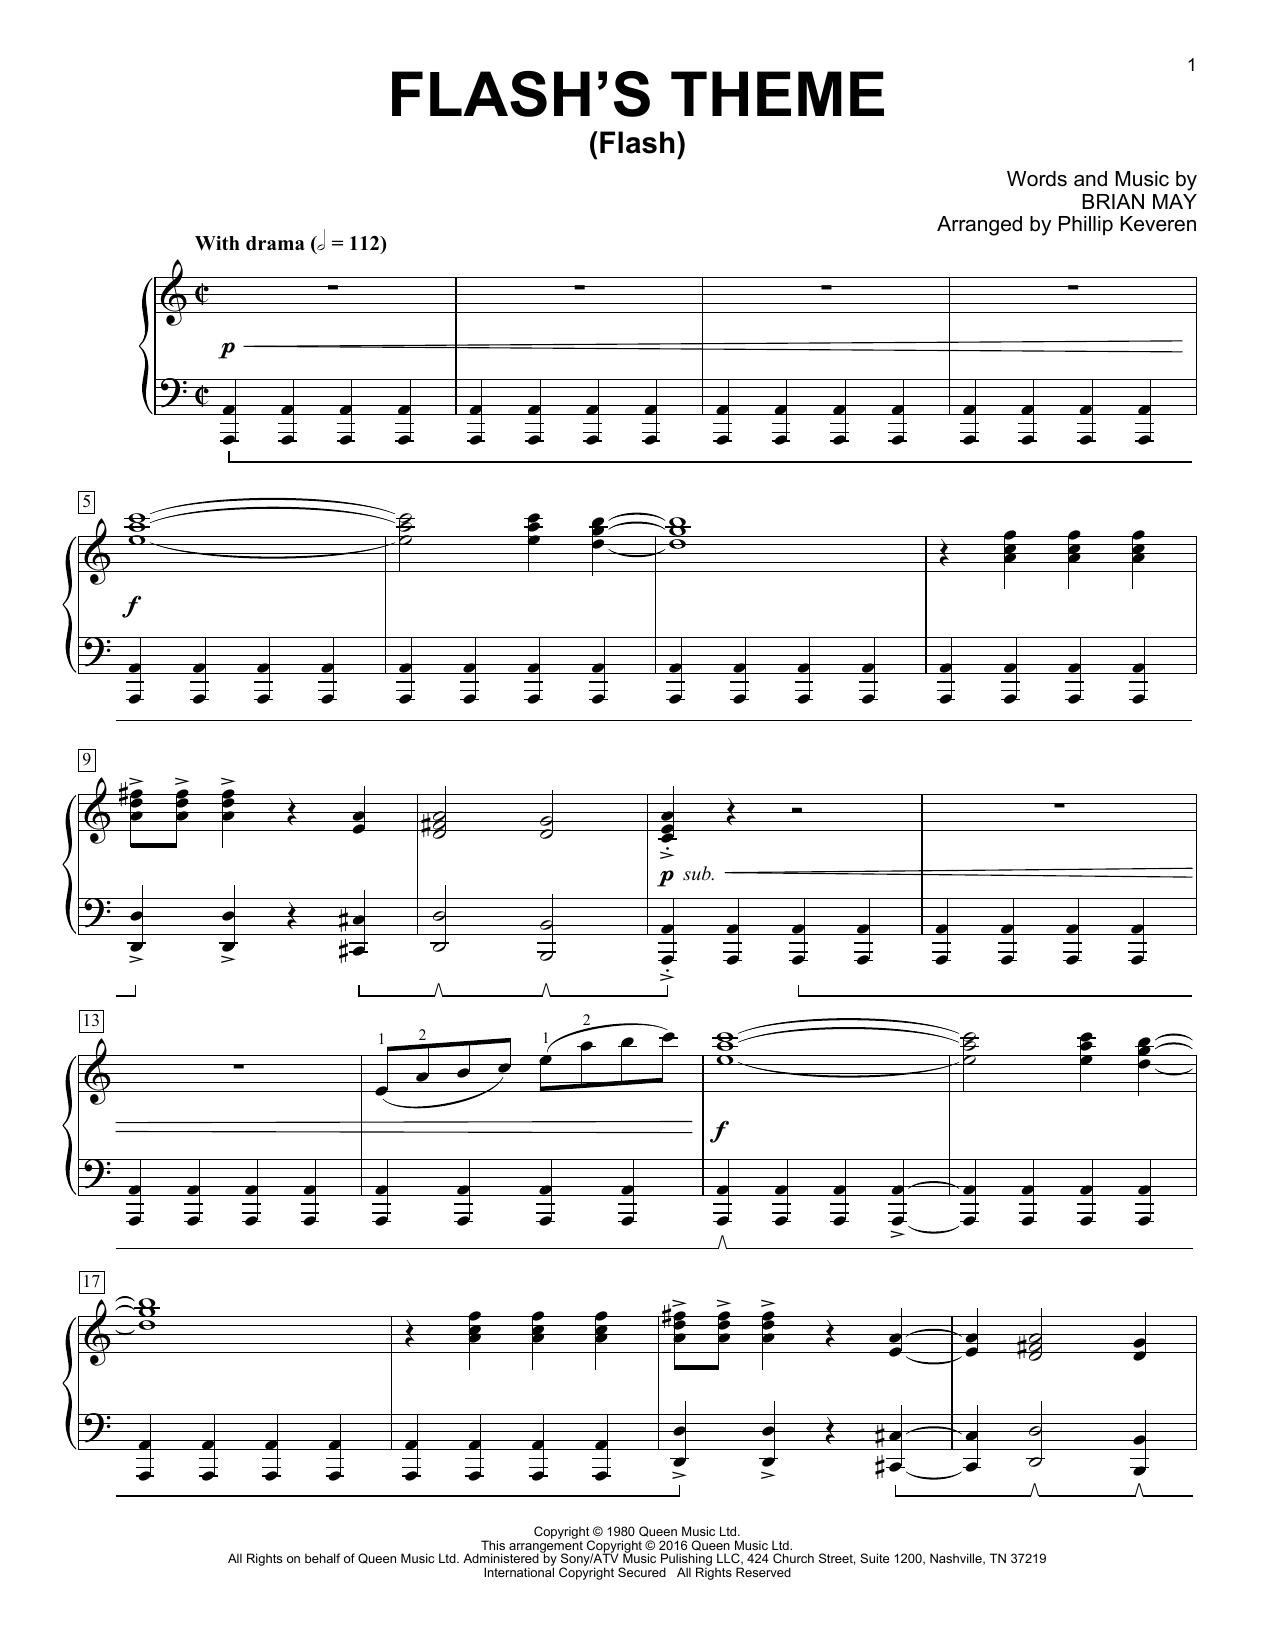 Download Queen 'Flash's Theme (Flash)' Digital Sheet Music Notes & Chords and start playing in minutes